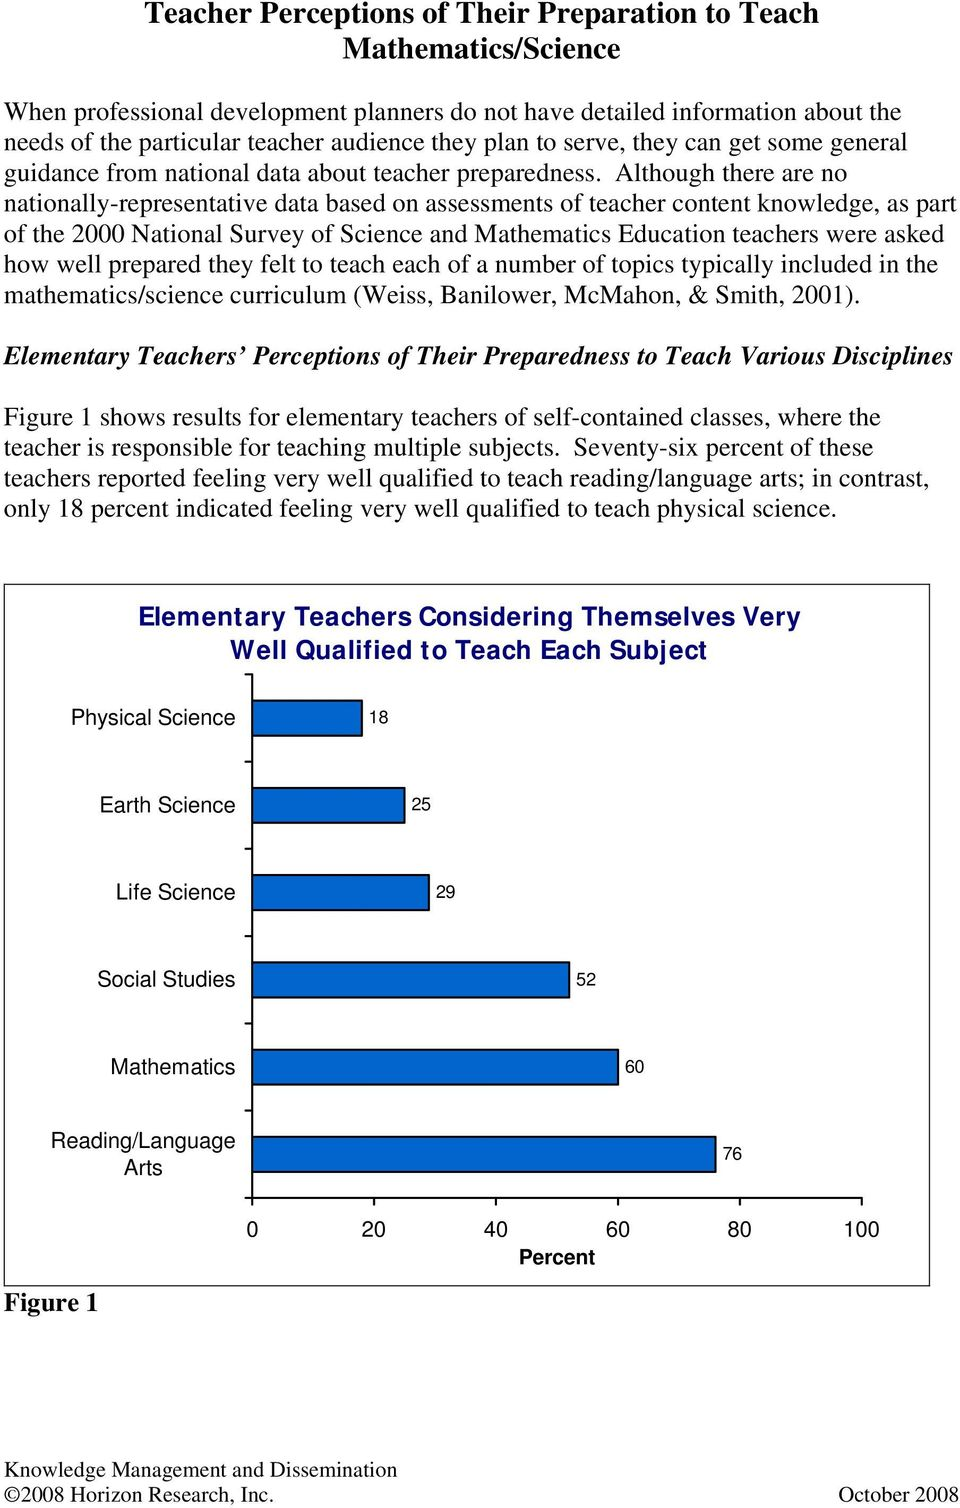 Although there are no nationally-representative data based on assessments of teacher content knowledge, as part of the 2000 National Survey of Science and Mathematics Education teachers were asked